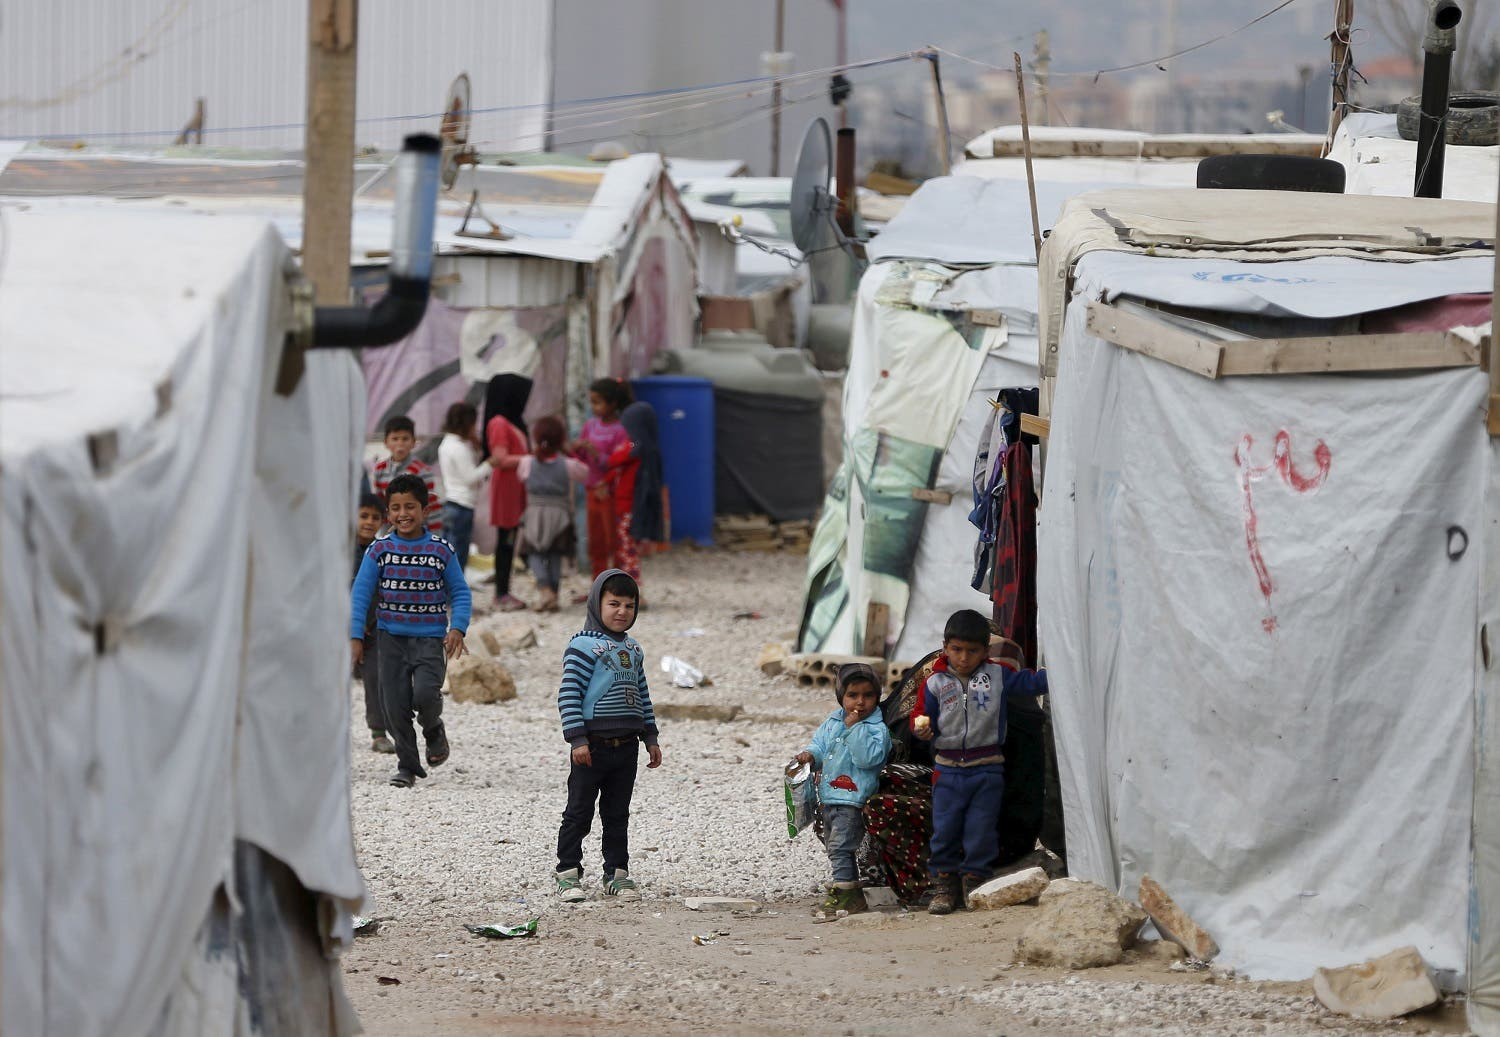 Syrian refugee children are seen outside their makeshift house at an unofficial refugee camp in the village of Deir Zannoun in Lebanon's Bekaa valley. (File photo: Reuters)